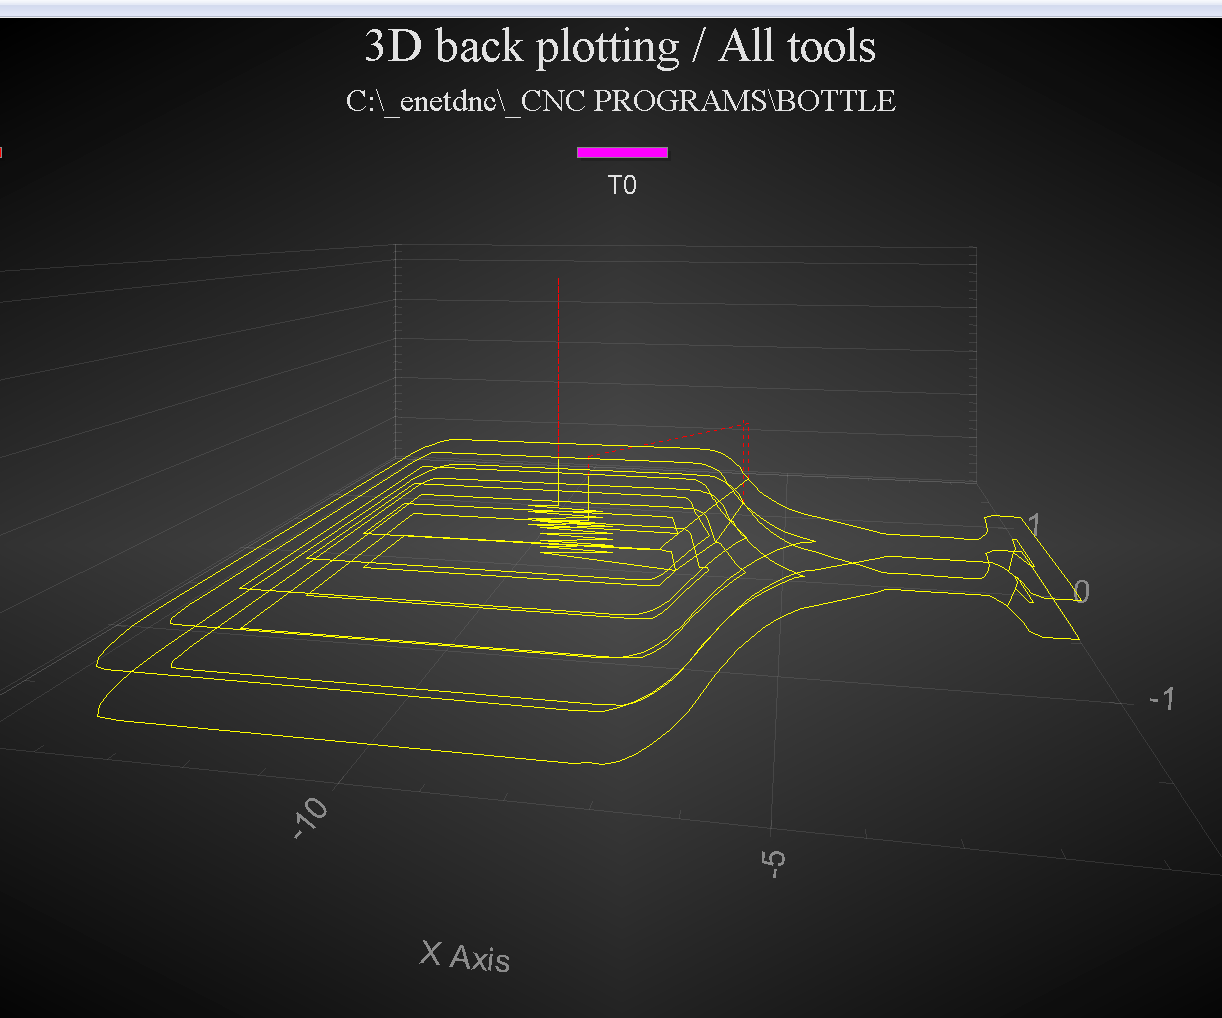 screenshot of 3D back plotting